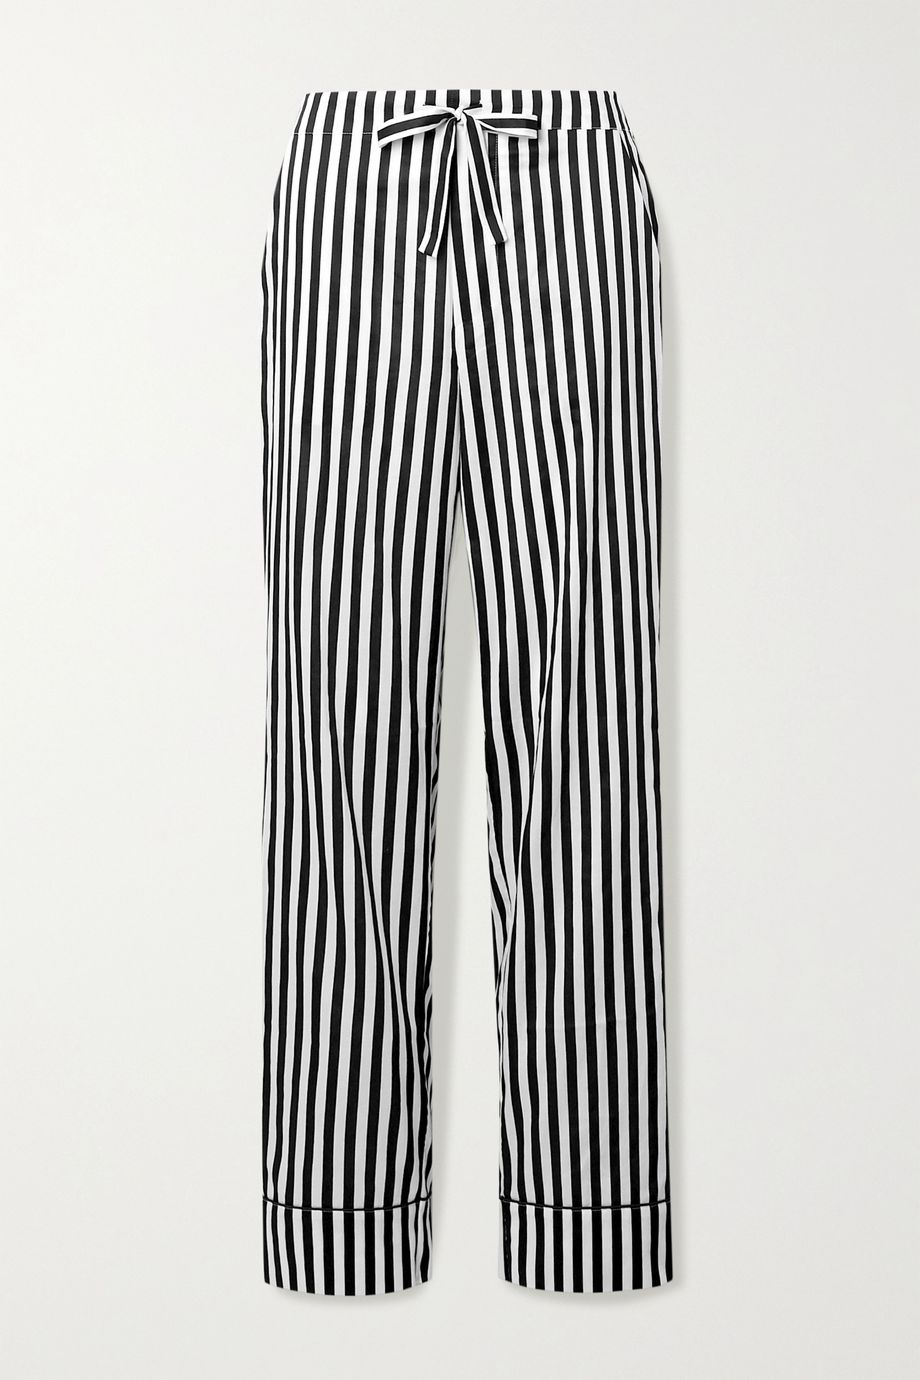 Les Girls Les Boys Piped striped cotton-sateen pajama pants